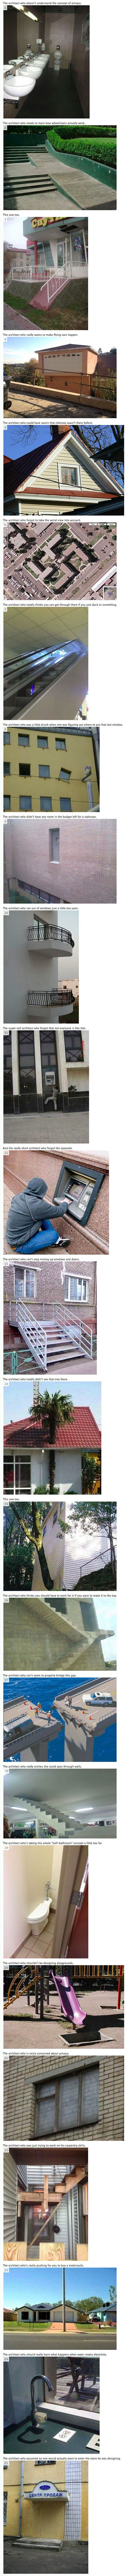 We have rounded up some bizarre construction FAILS that will leave you puzzled.